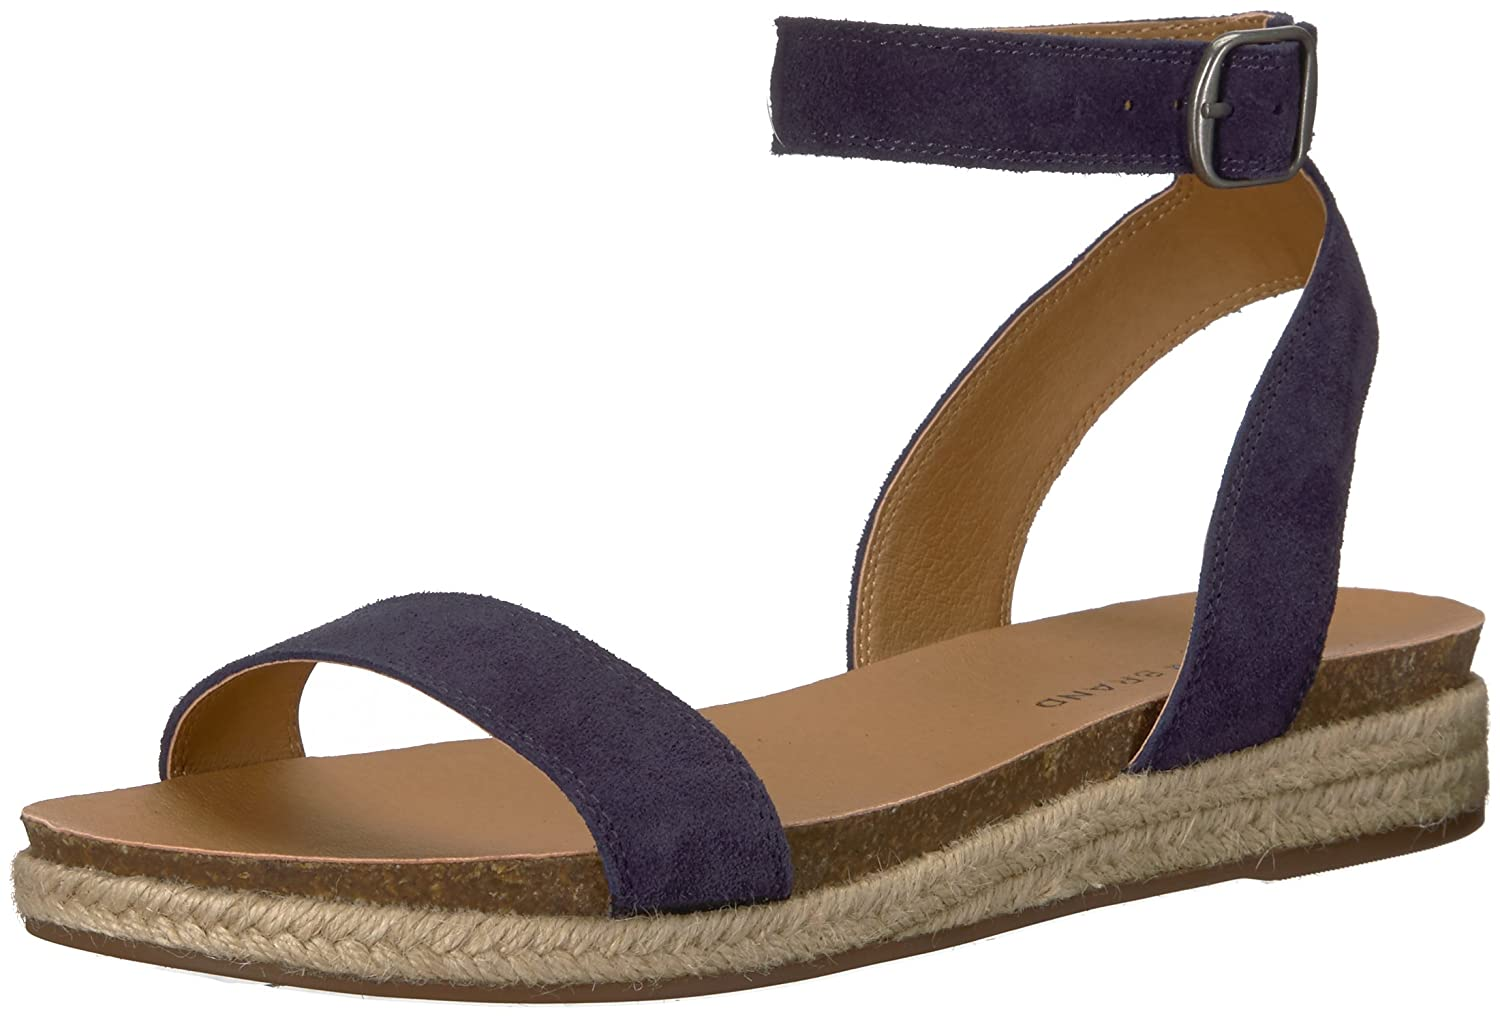 [Lucky Brand] Women's Garston Ankle-High Suede Sandal 6 B(M) US ブルー(Moroccan Blue) B077GCXZY7